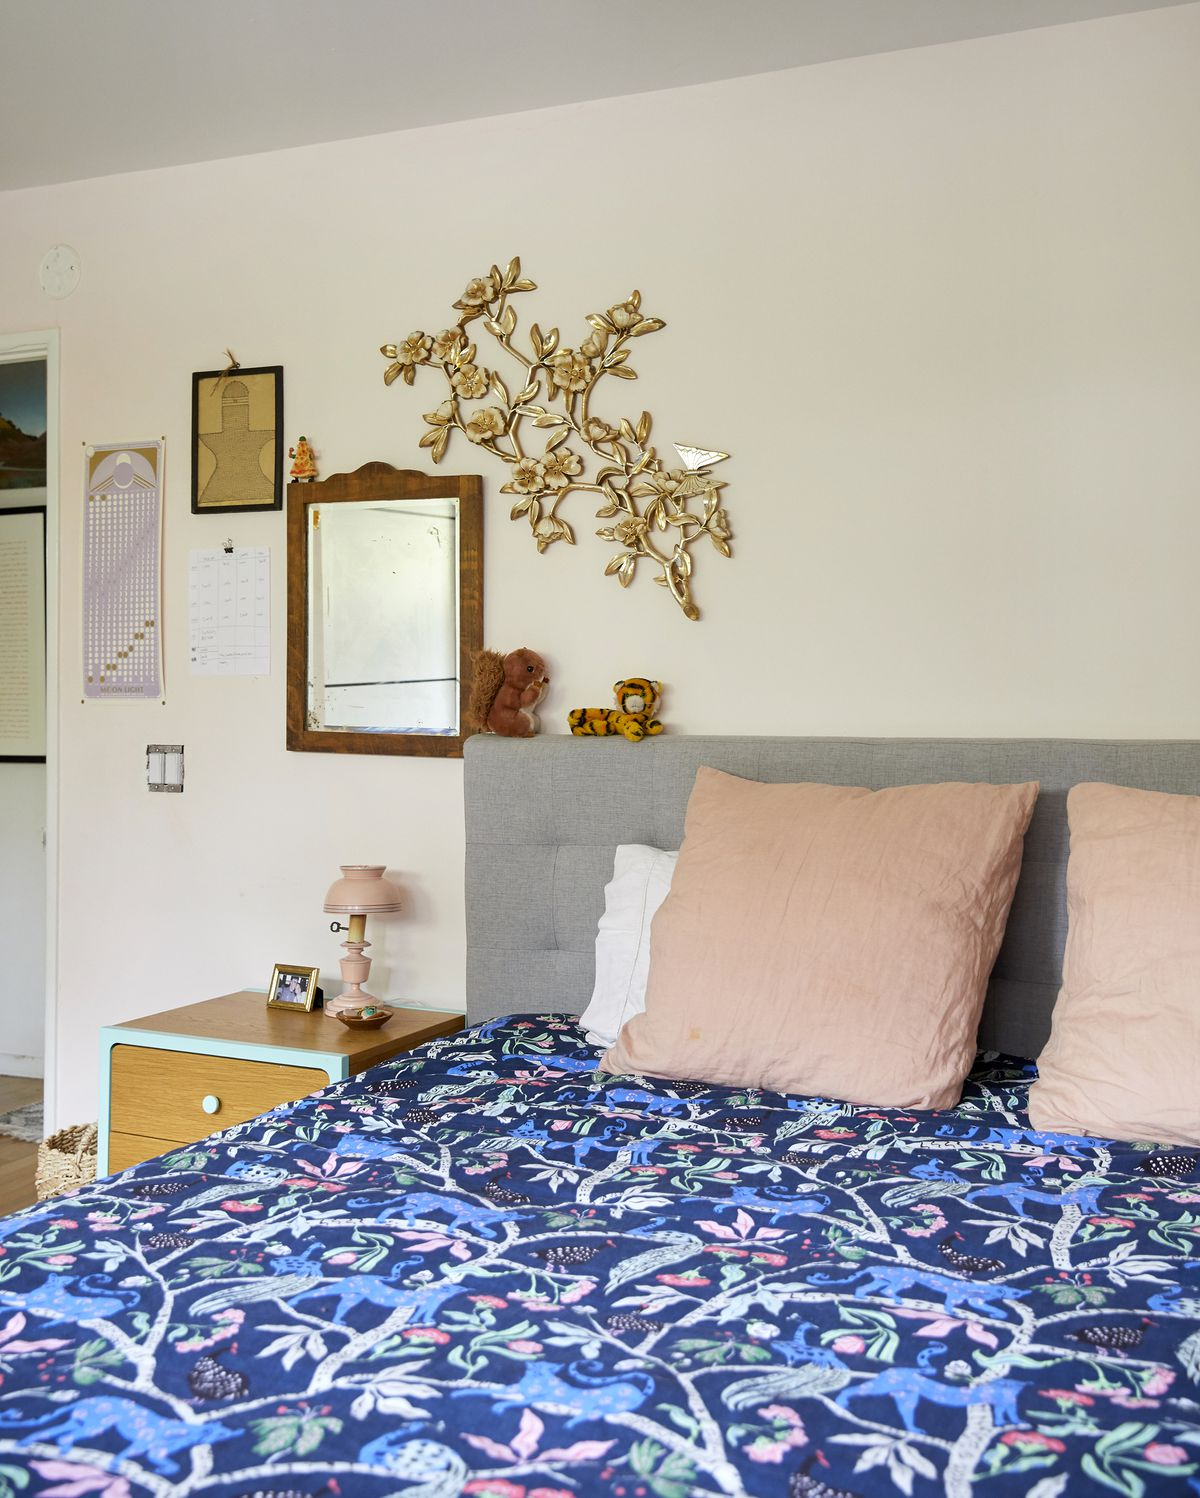 A bedroom with a bed that has patterned bedding and pillows. There is a nightstand to the side of the bed with a lamp. Above the nightstand hangs a mirror and a variety of artwork.